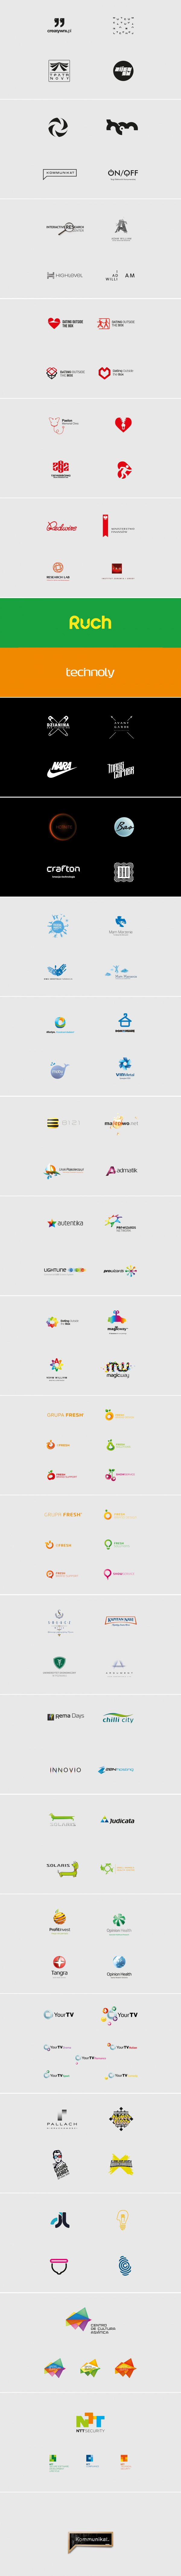 Logotheka contain concepts from 2006-2011. Selected logos designed by Kuba Enzowski.  Kommunikat